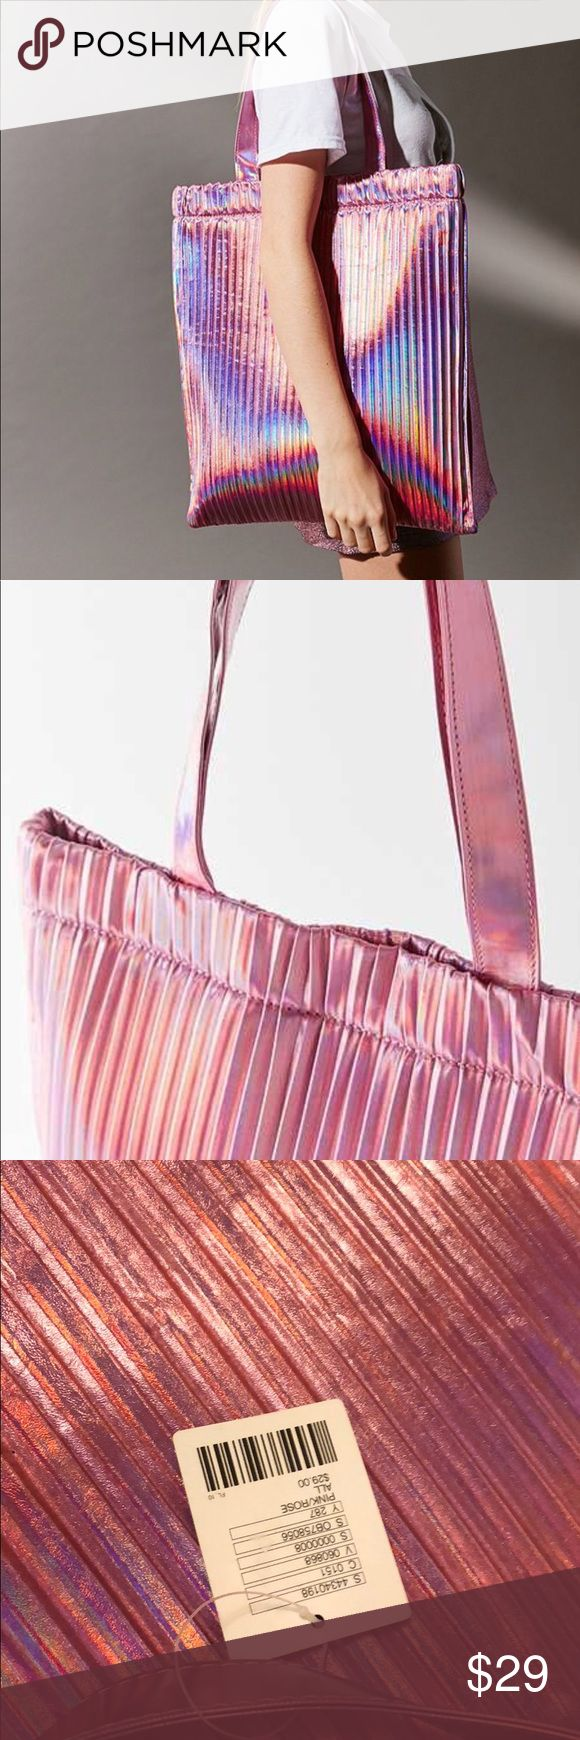 URBAN OUTFITTERS PLEATED TOTE BAG IN COLOR PINK When that minimalist lifestyle just isn't cutting it, pile all your necessities into this seriously luxe, pleated tote bag. Urban Outfitters Bags Totes